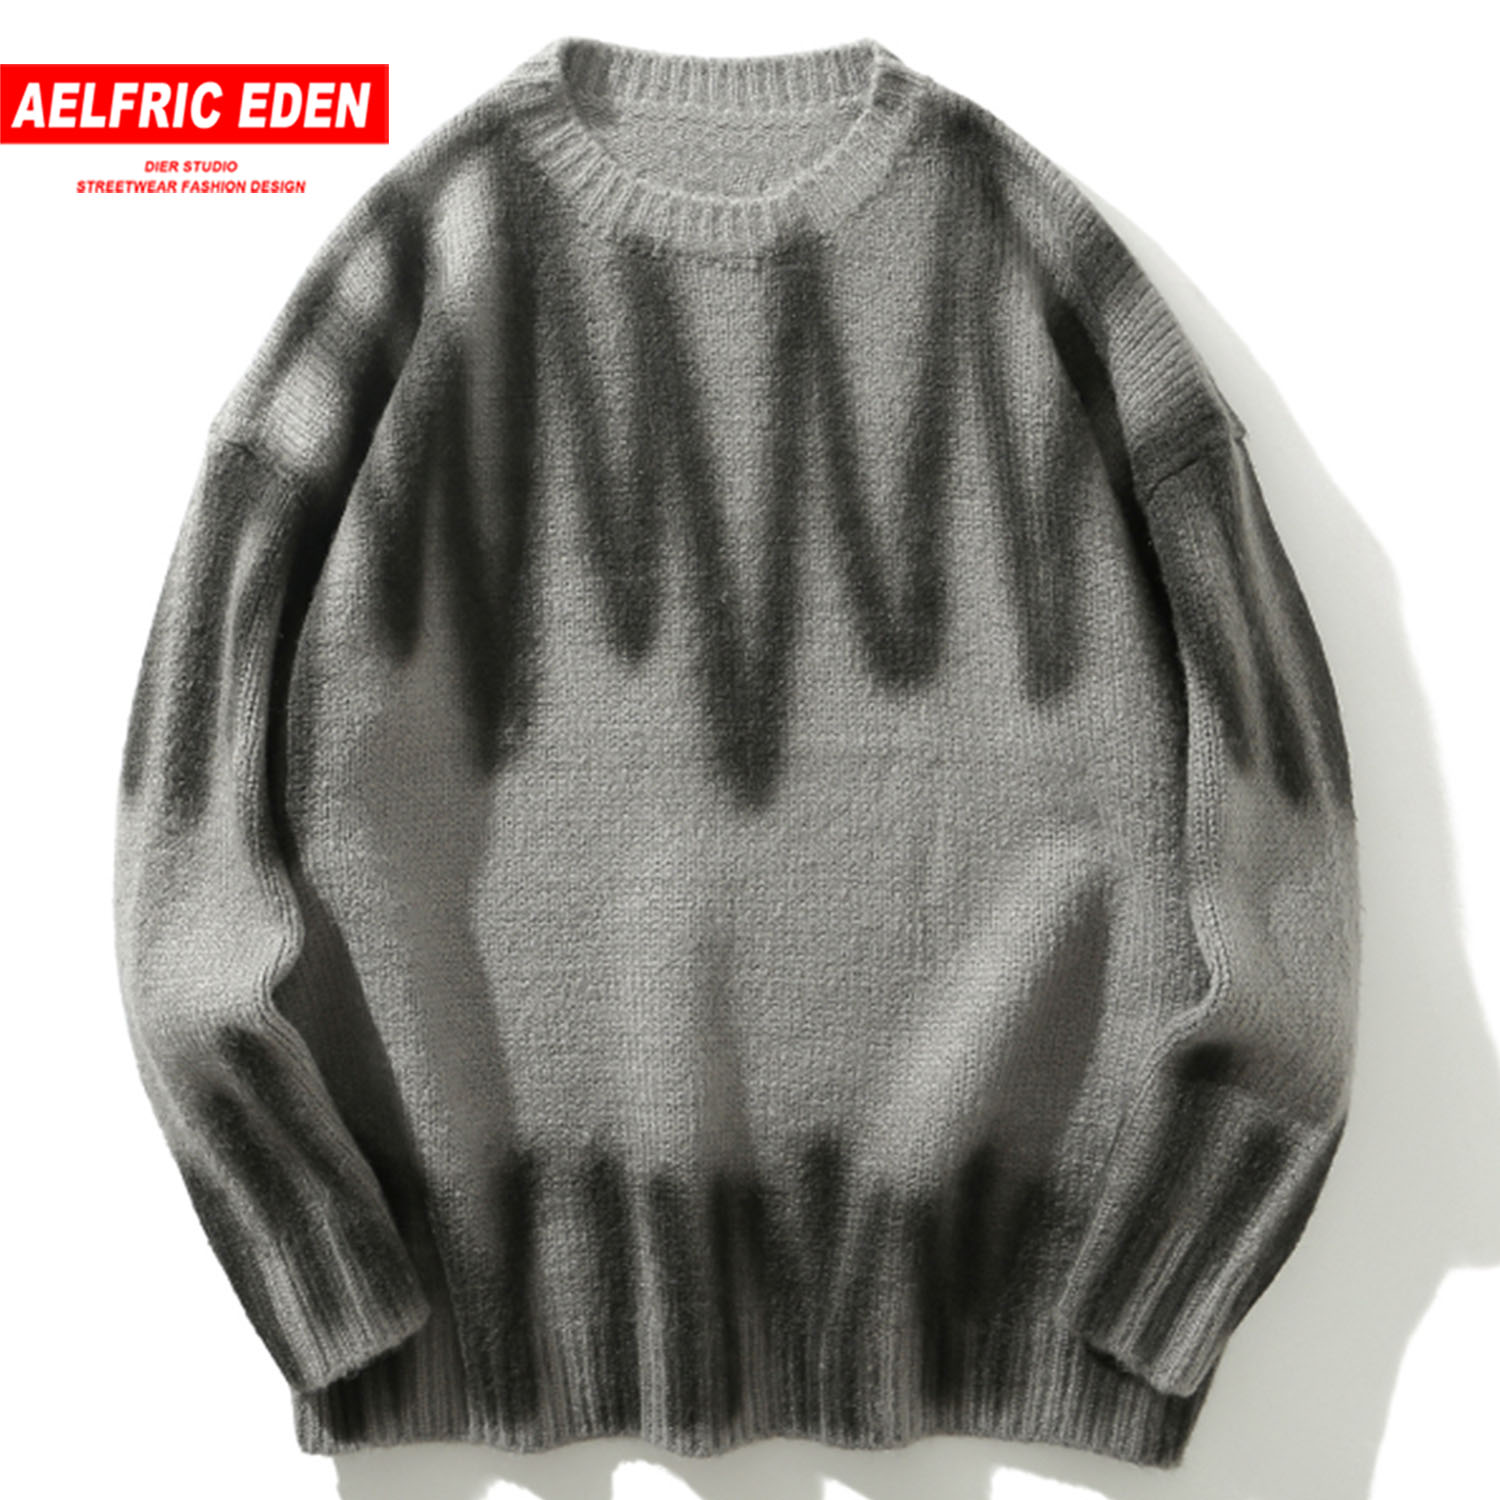 Aelfric Eden Wave Spray Paint Knitted Mens Sweaters Harajuku Hip Hop Tops 2019 Fashion Casual Male Pullovers Outwear Streetwear